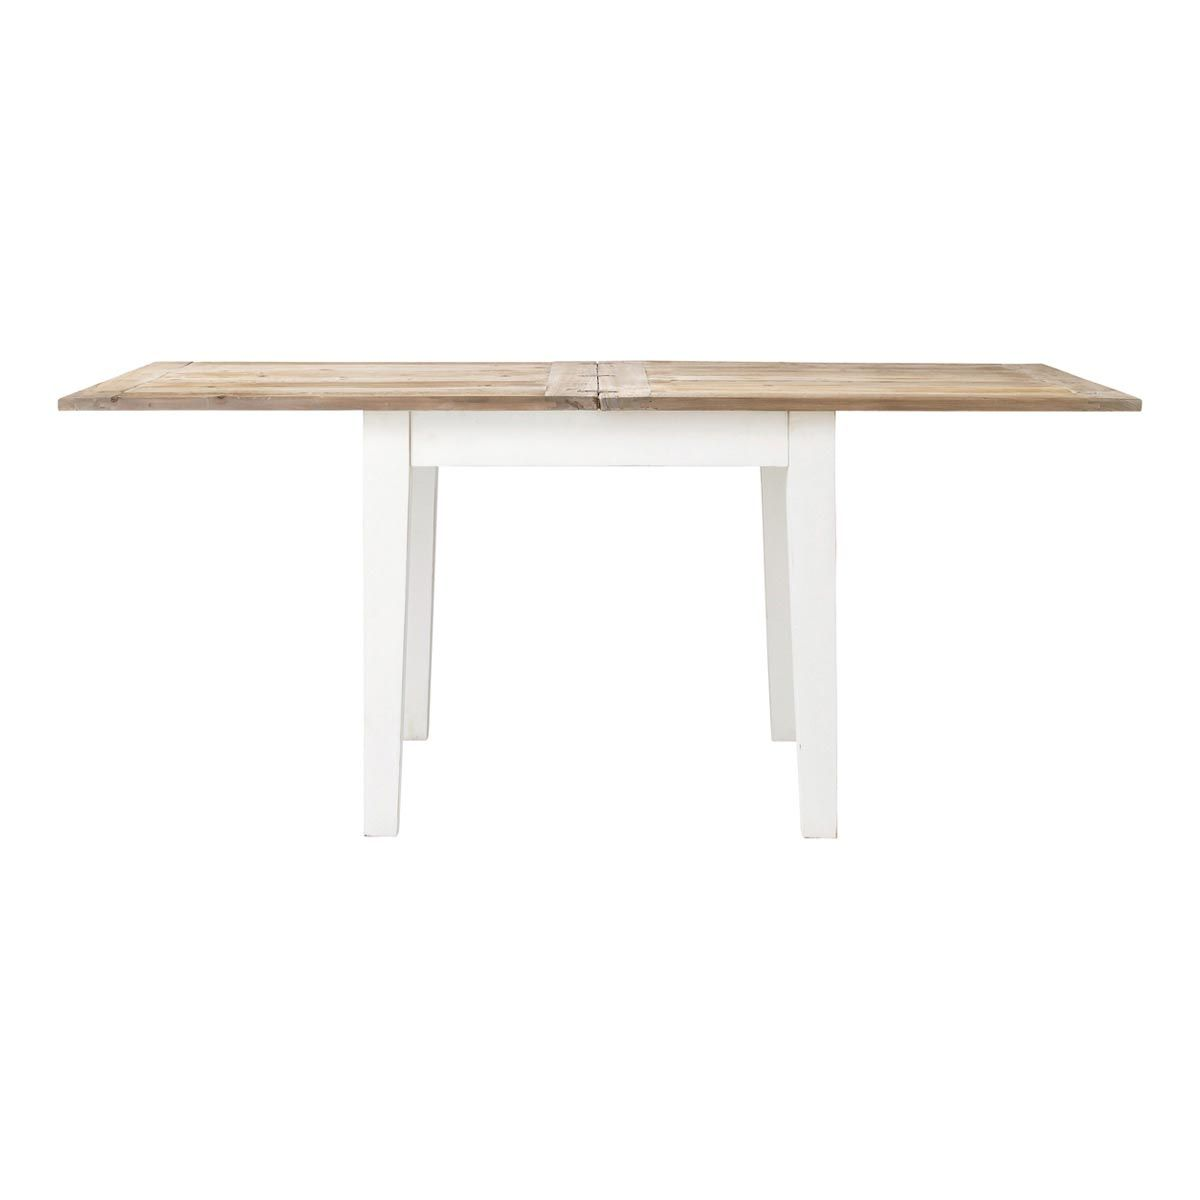 Extendible Seater Dining Table W Cm Tables De Cuisine - Table pliante 240 cm pour idees de deco de cuisine